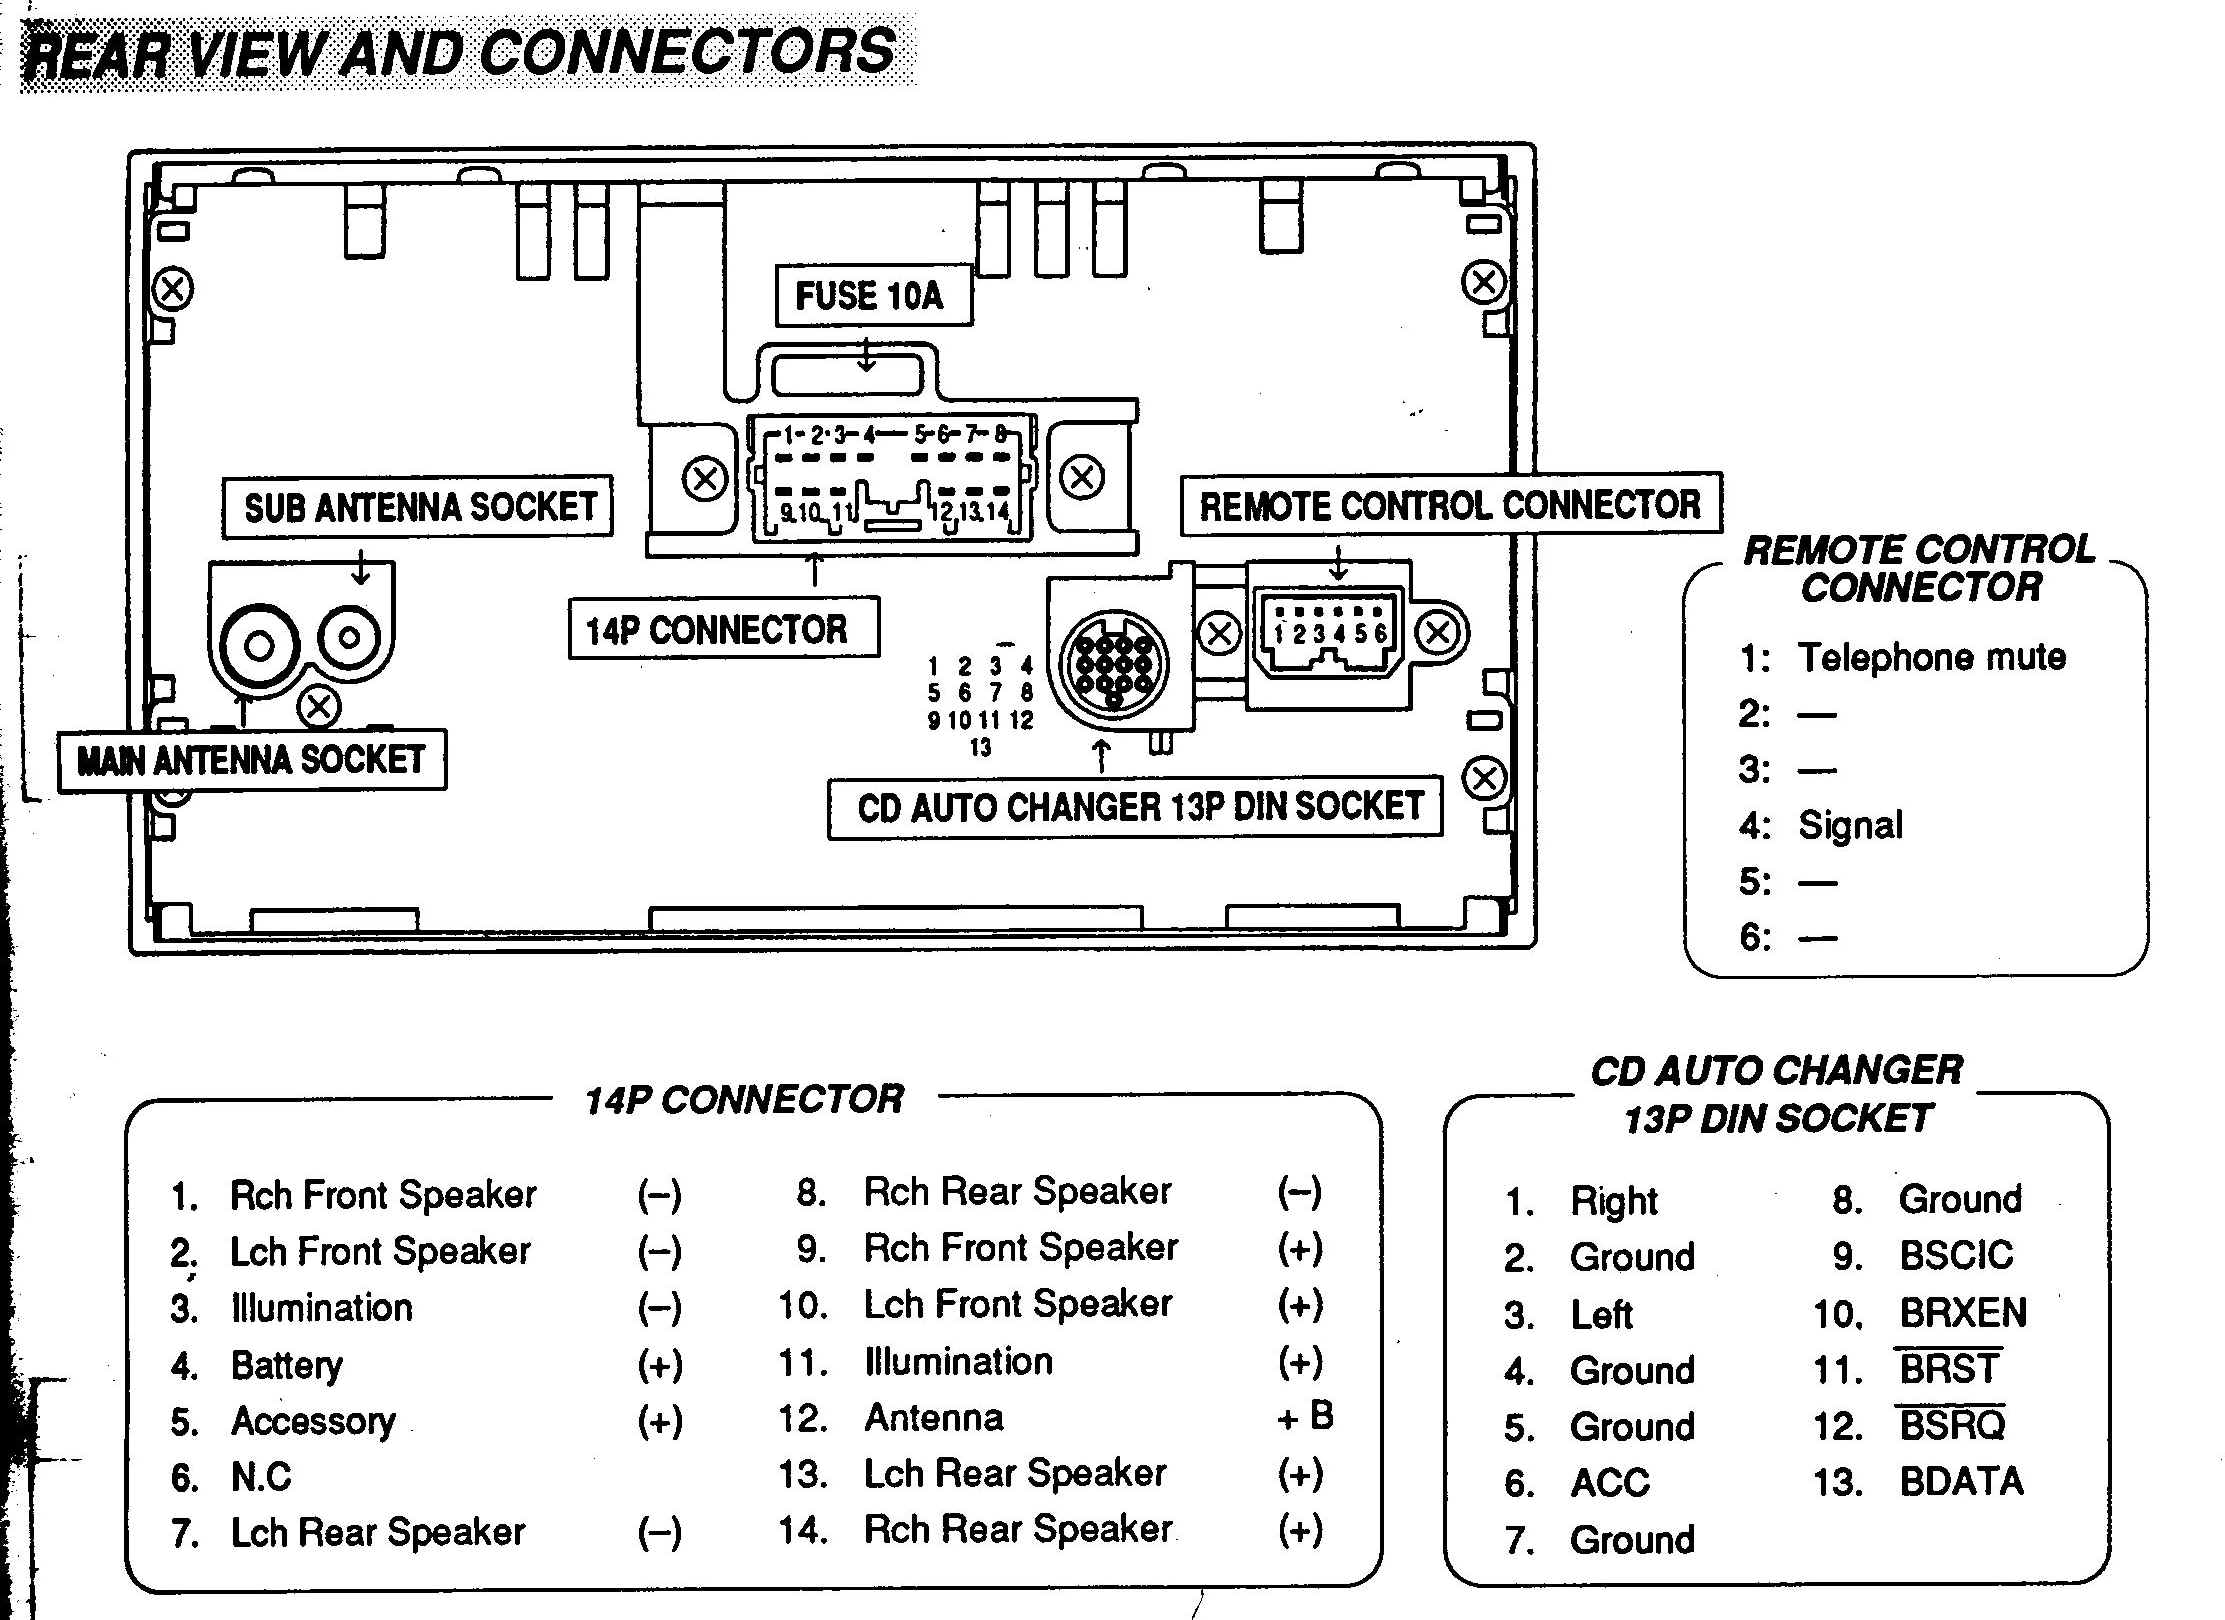 Car Stereo Repair - Wire Harness Codes and Diagrams - Bose Car Stereo Speaker